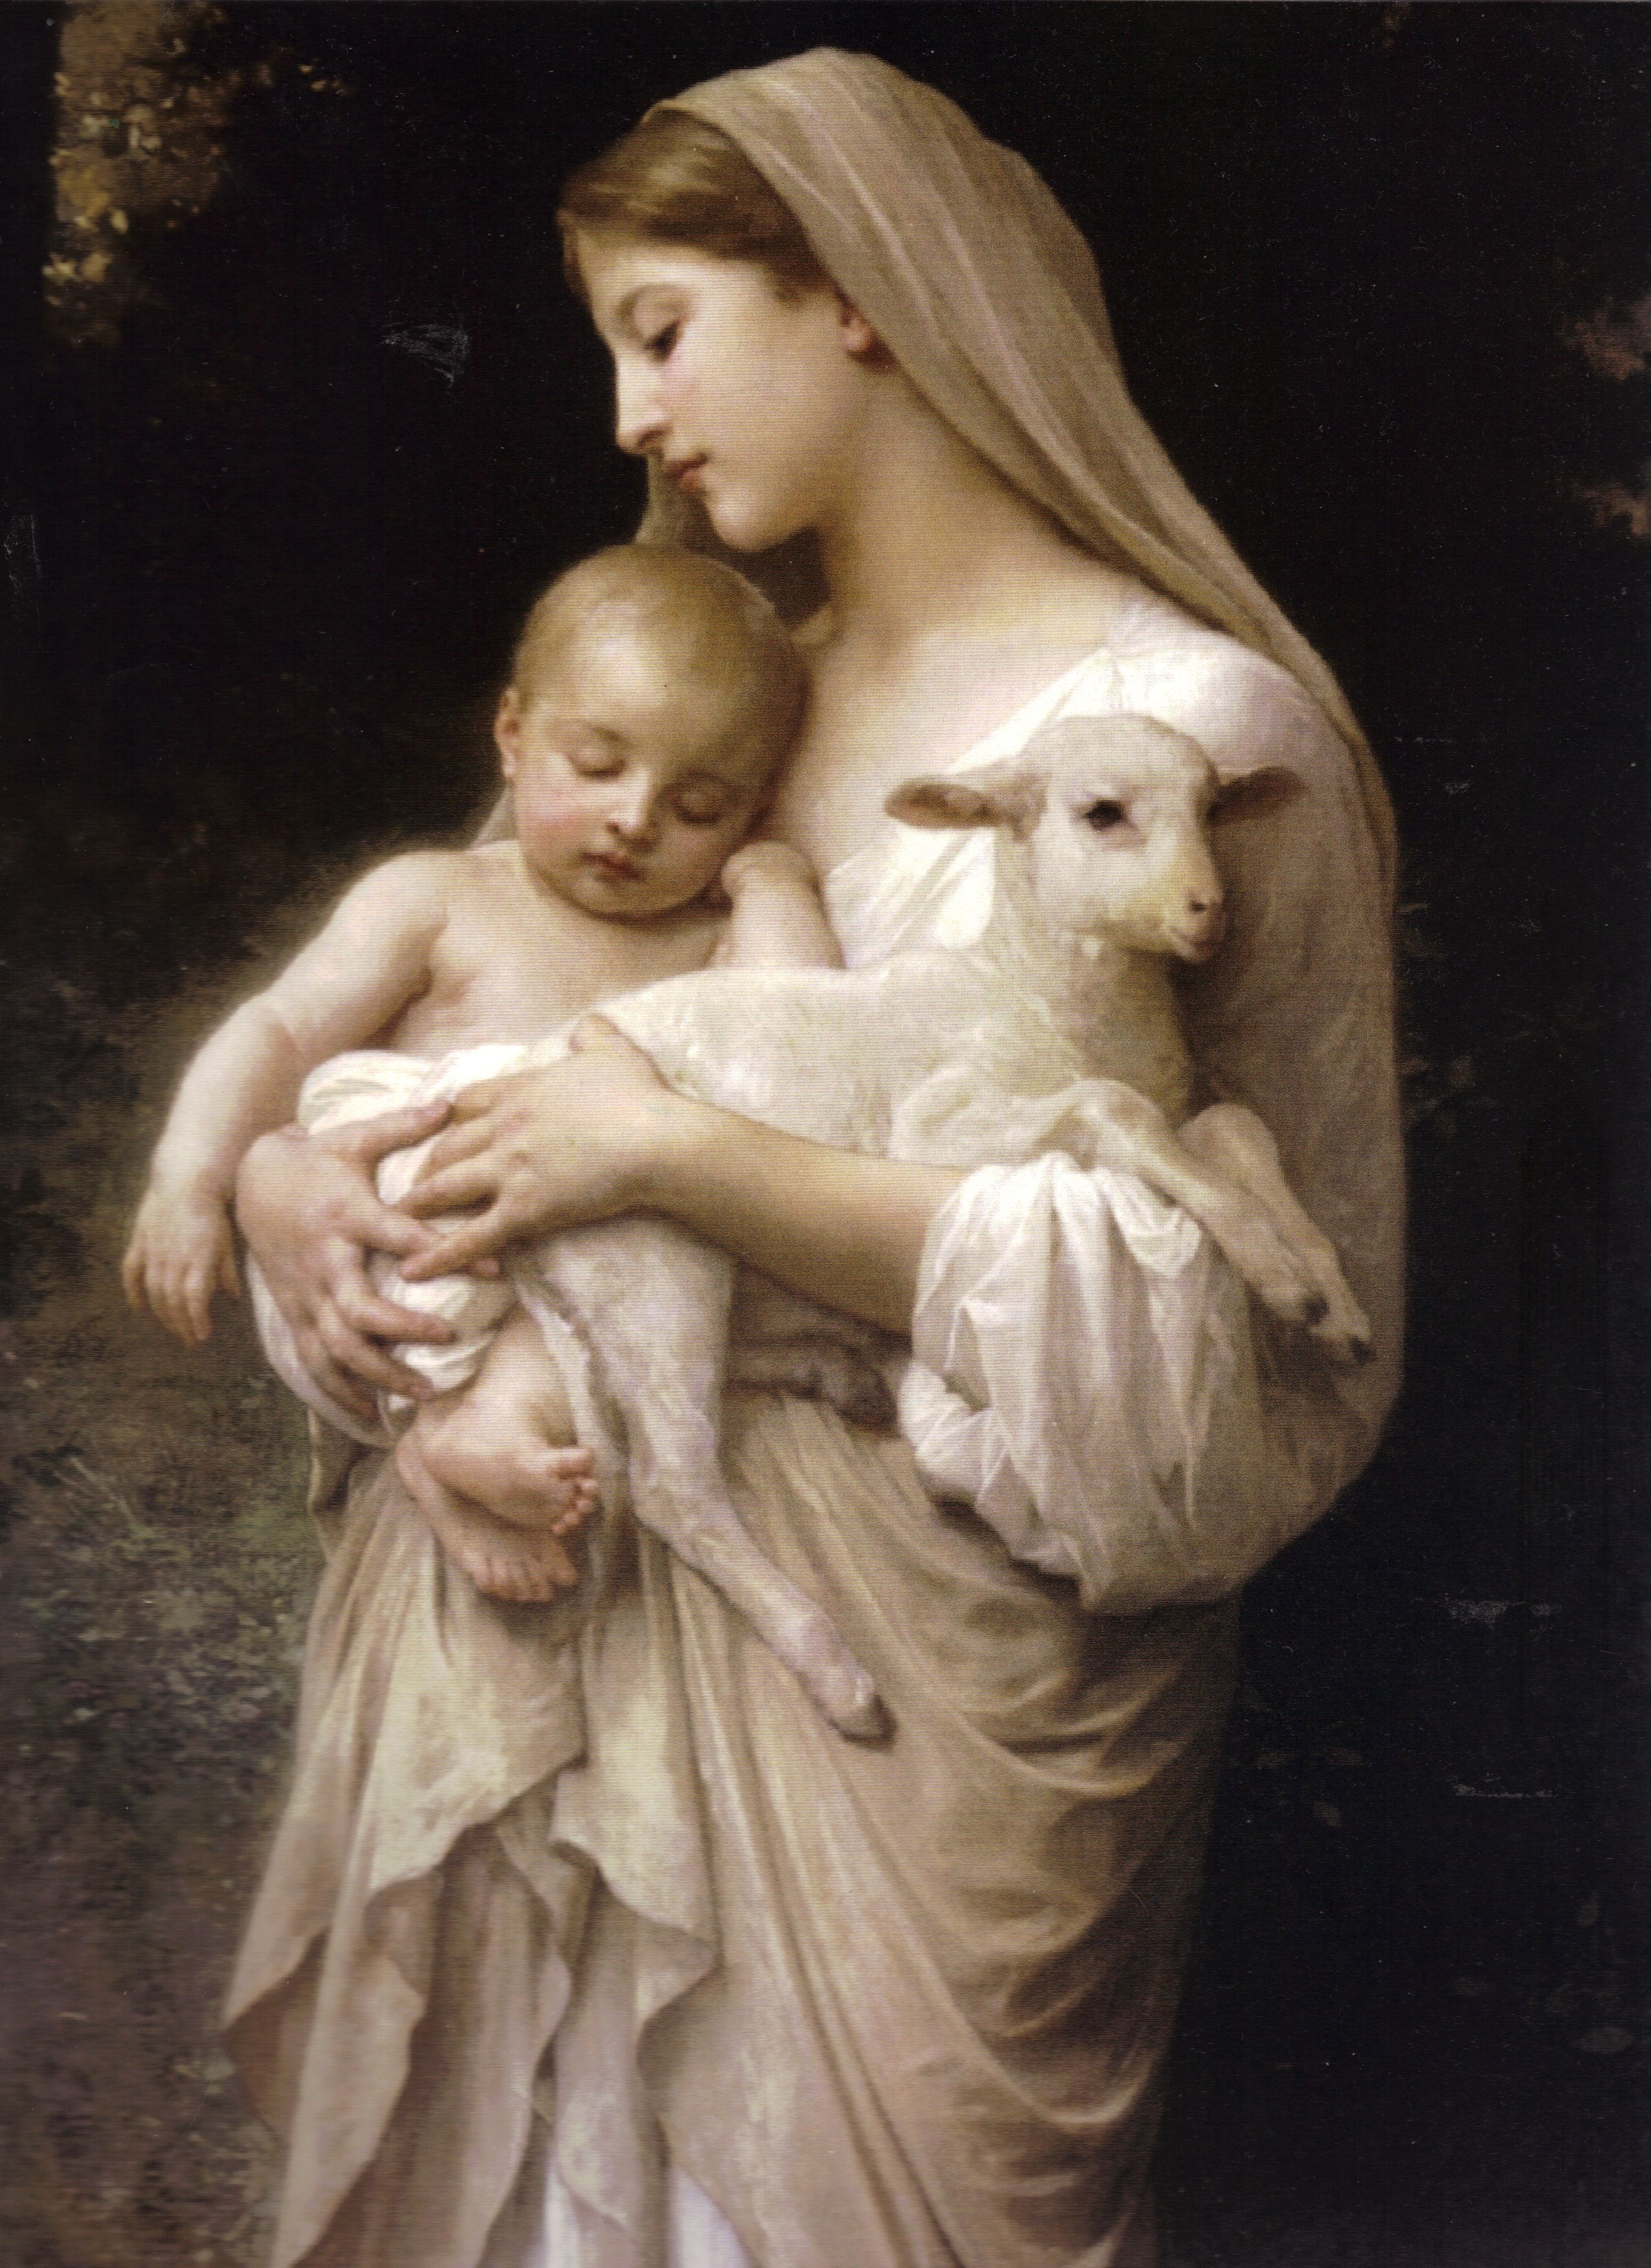 pictures of jesus |  virgin mary holding the baby jesus and a